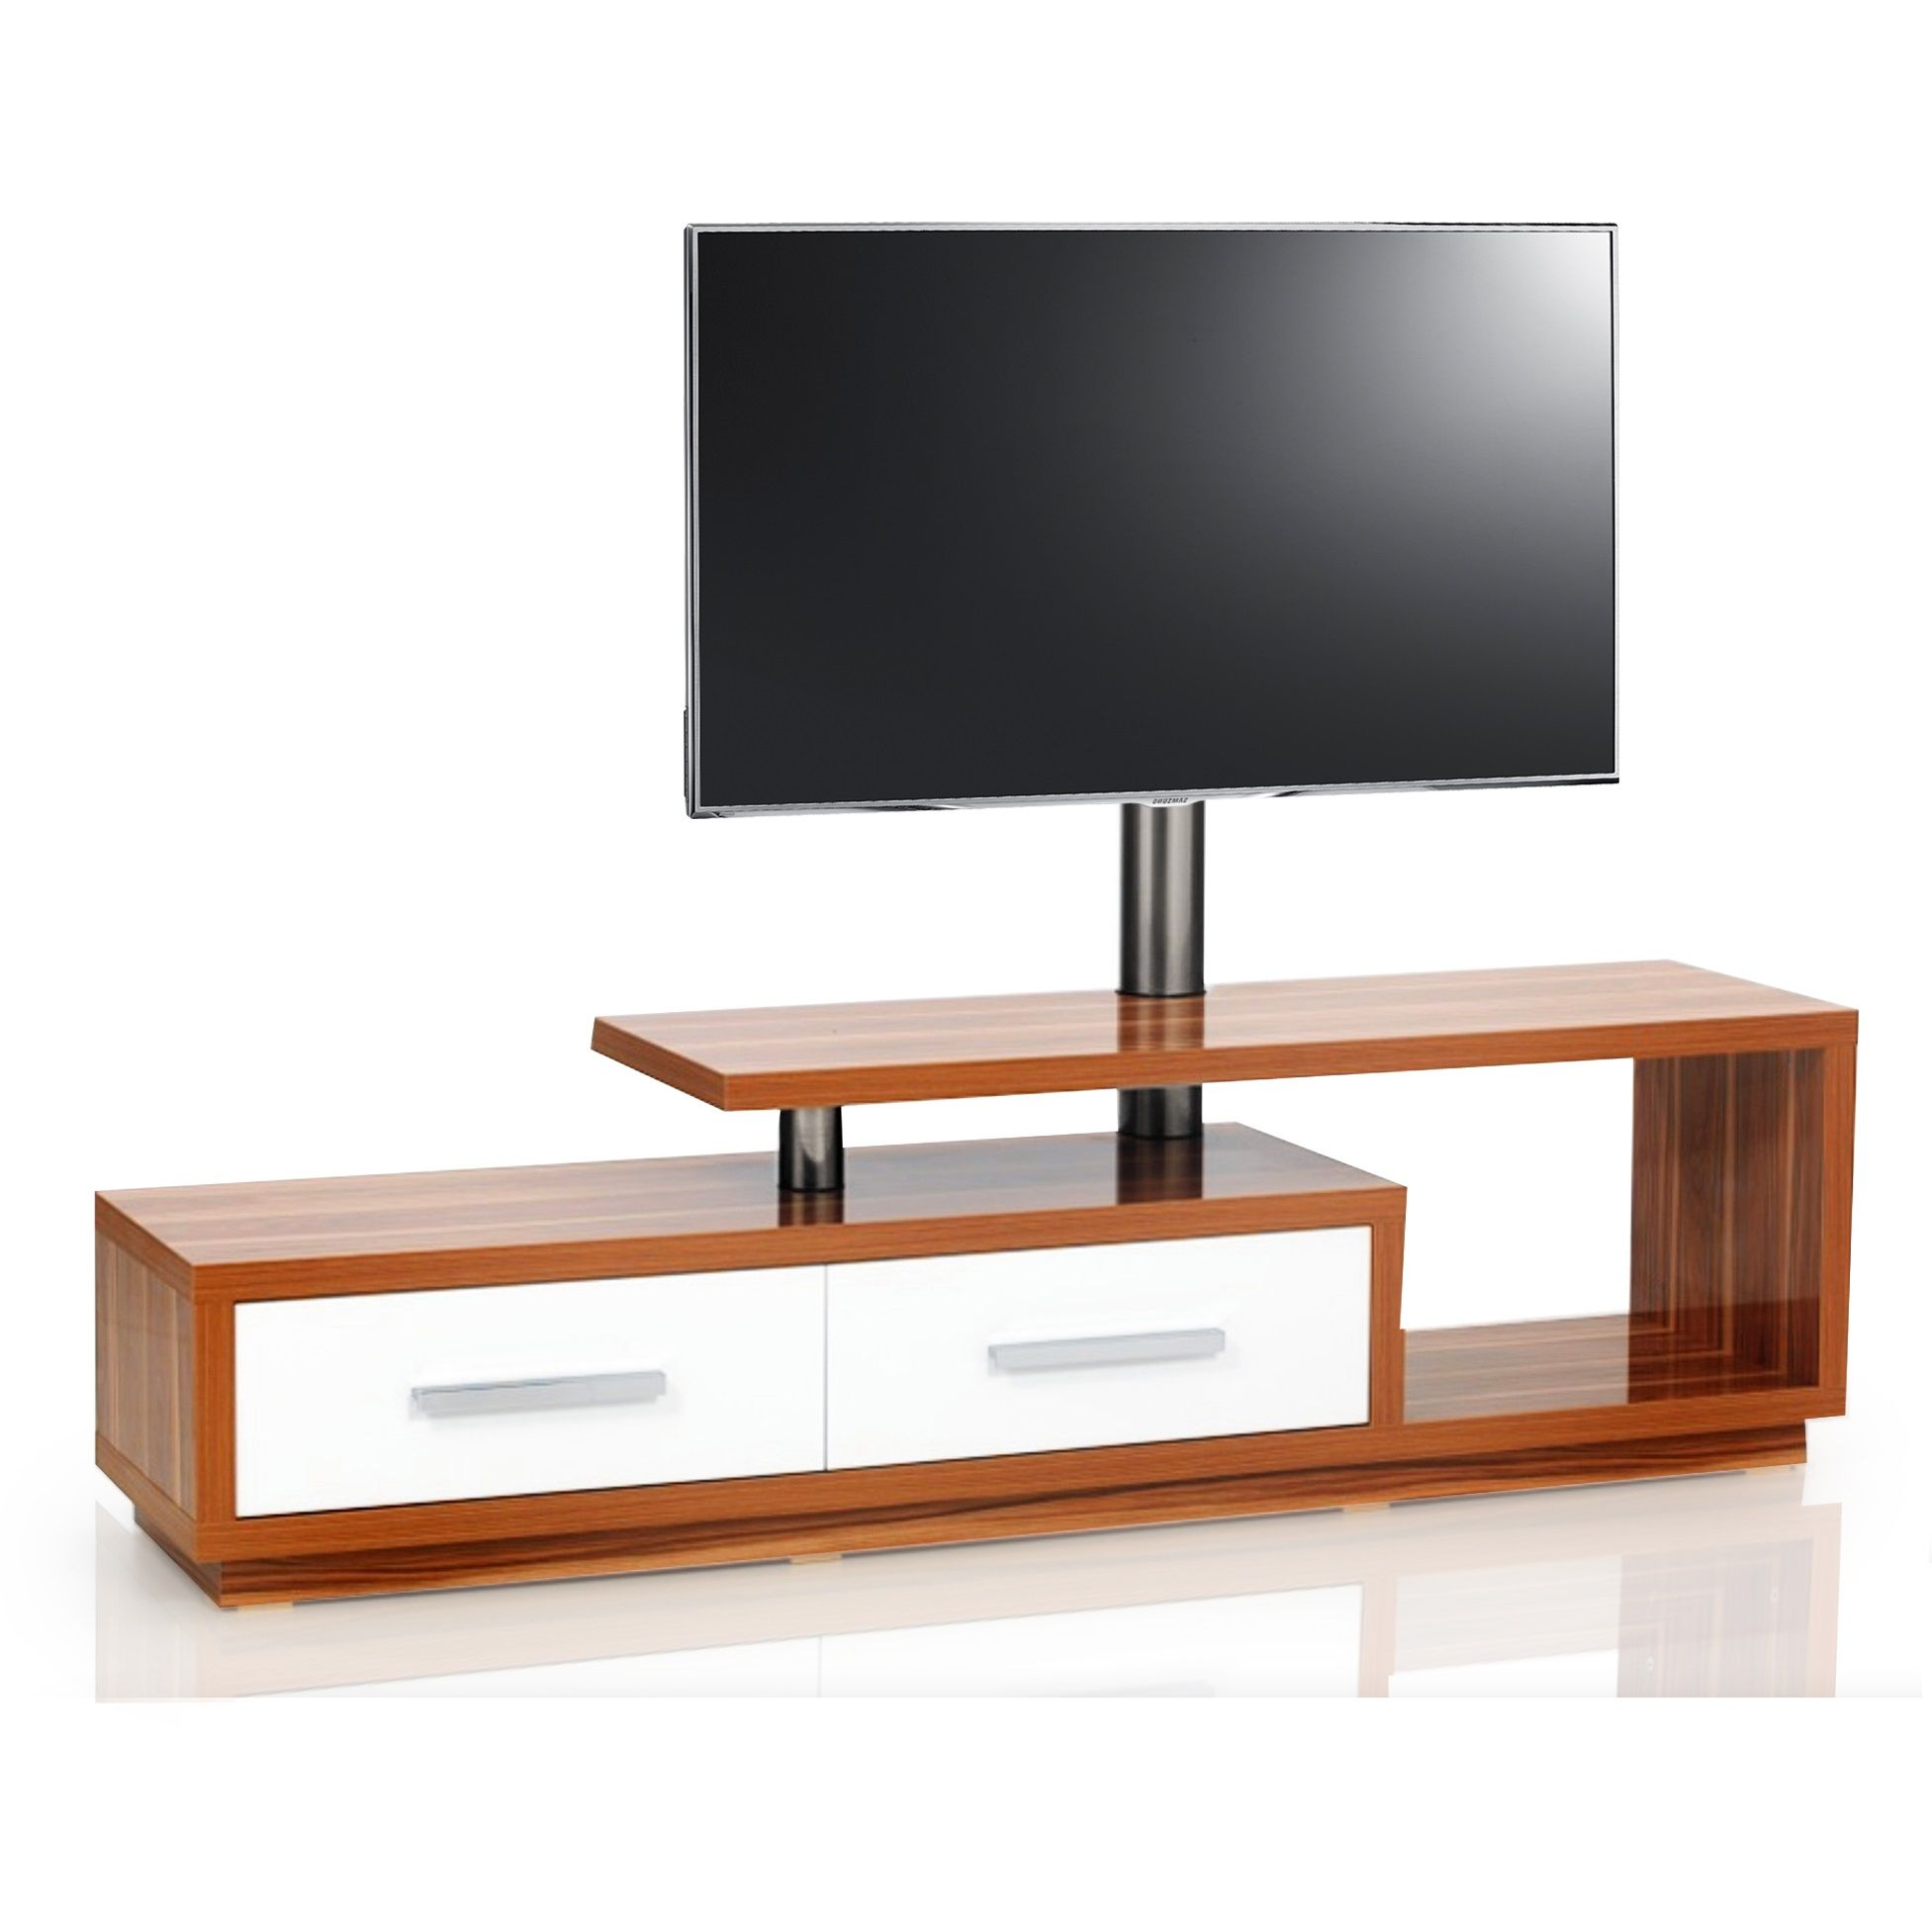 Stunning Tables De Television Contemporary Joshkrajcik Us  # Banc Tele But